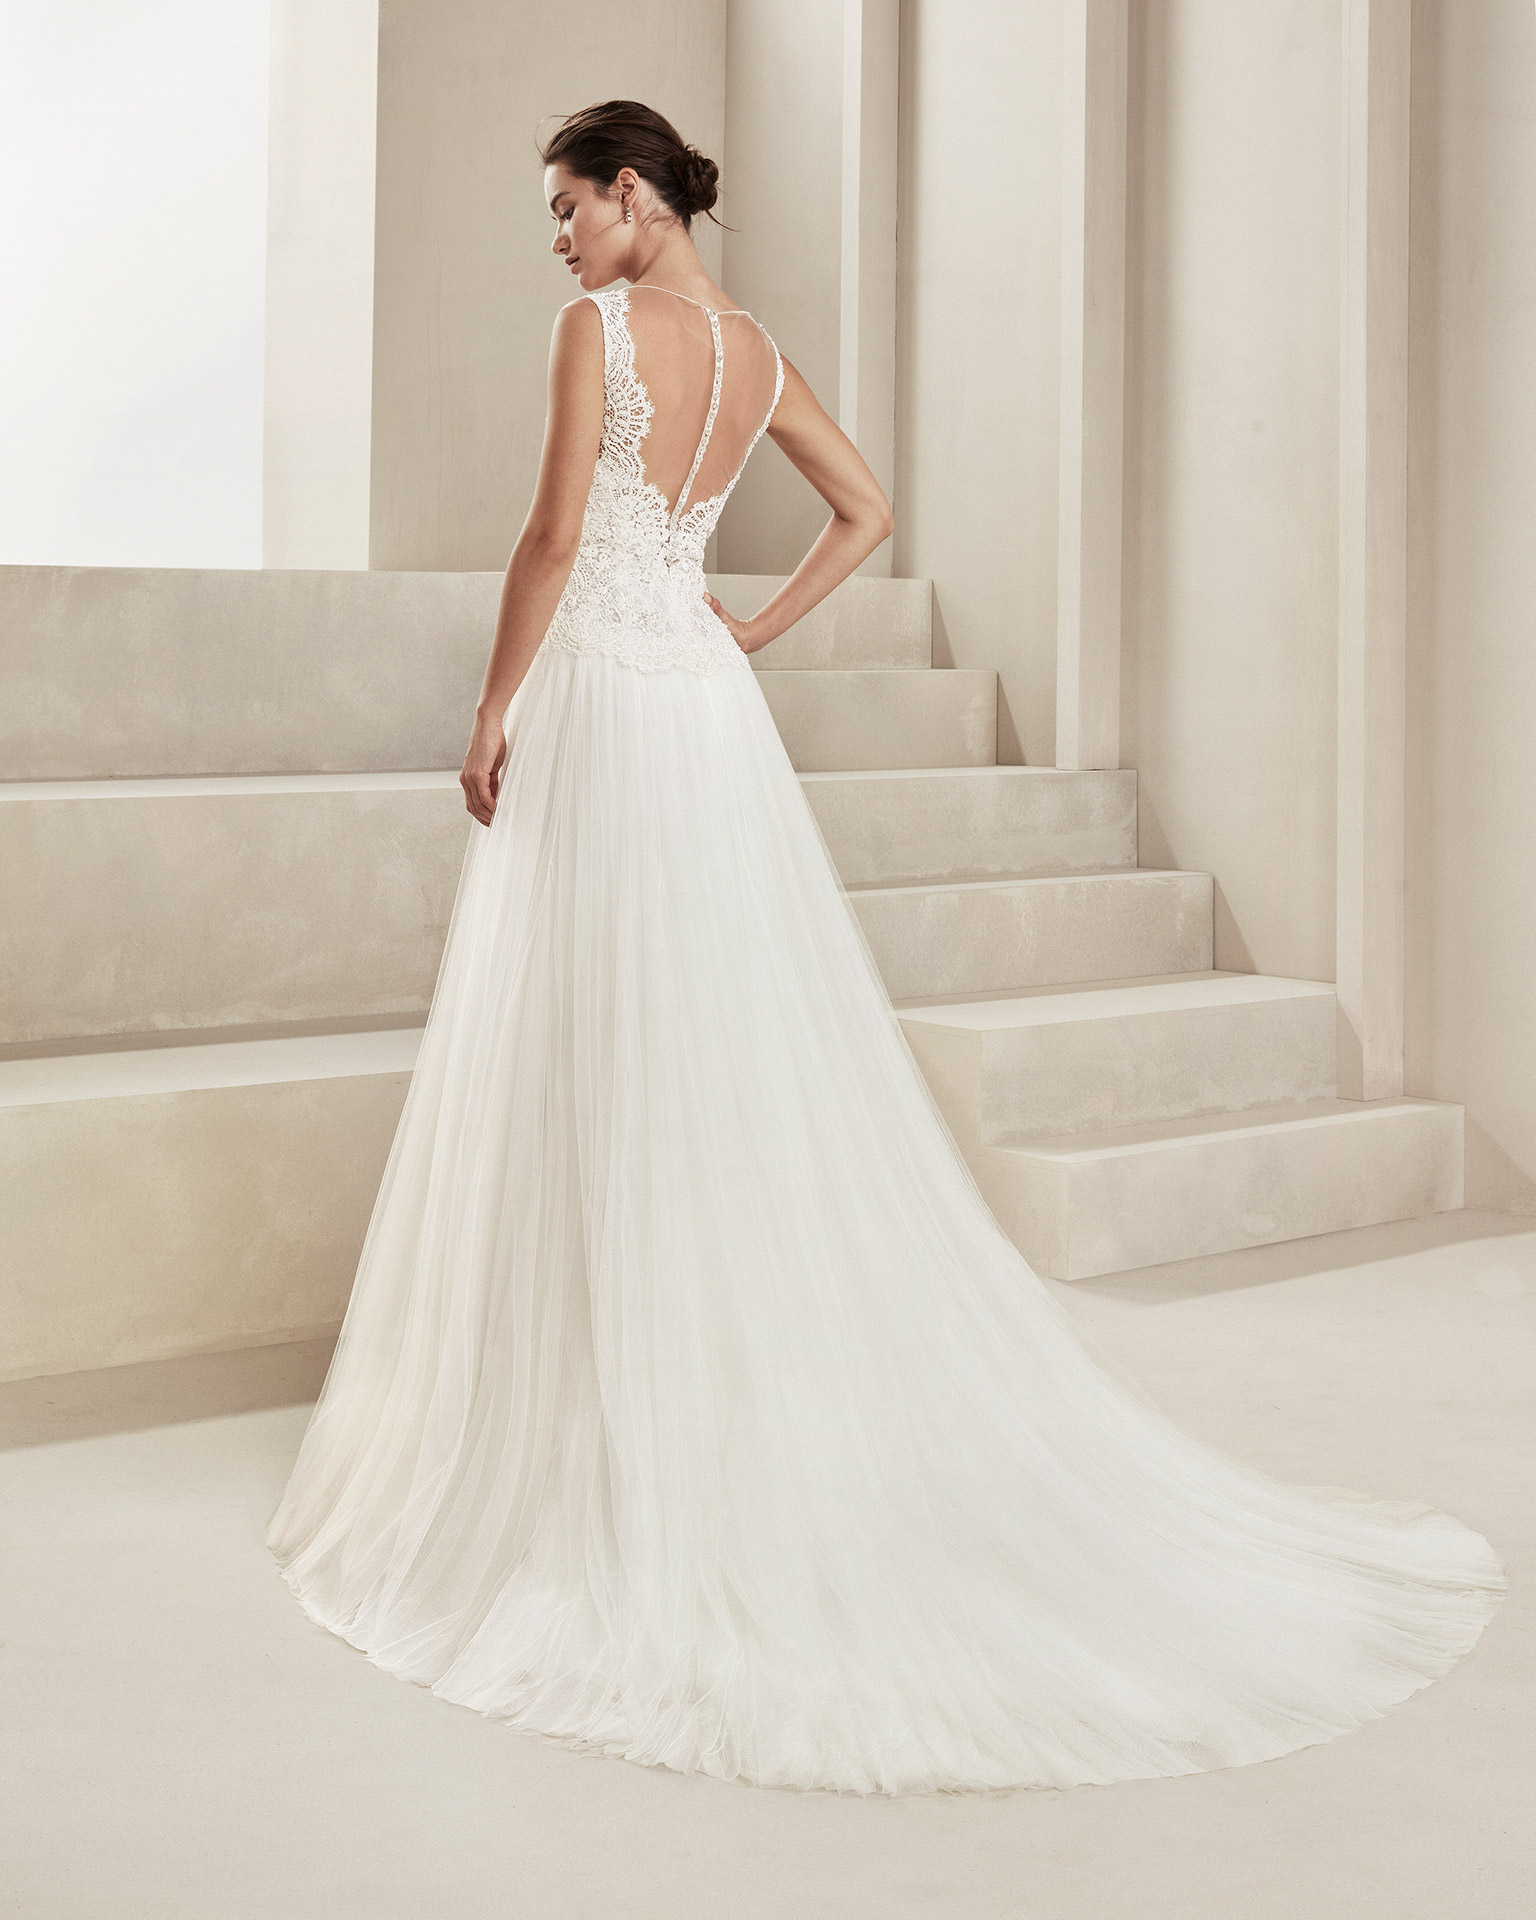 Romantic soft tulle and beaded lace wedding dress. With V-neckline and tulle back. Available in natural. 2020 ALMANOVIA Collection.